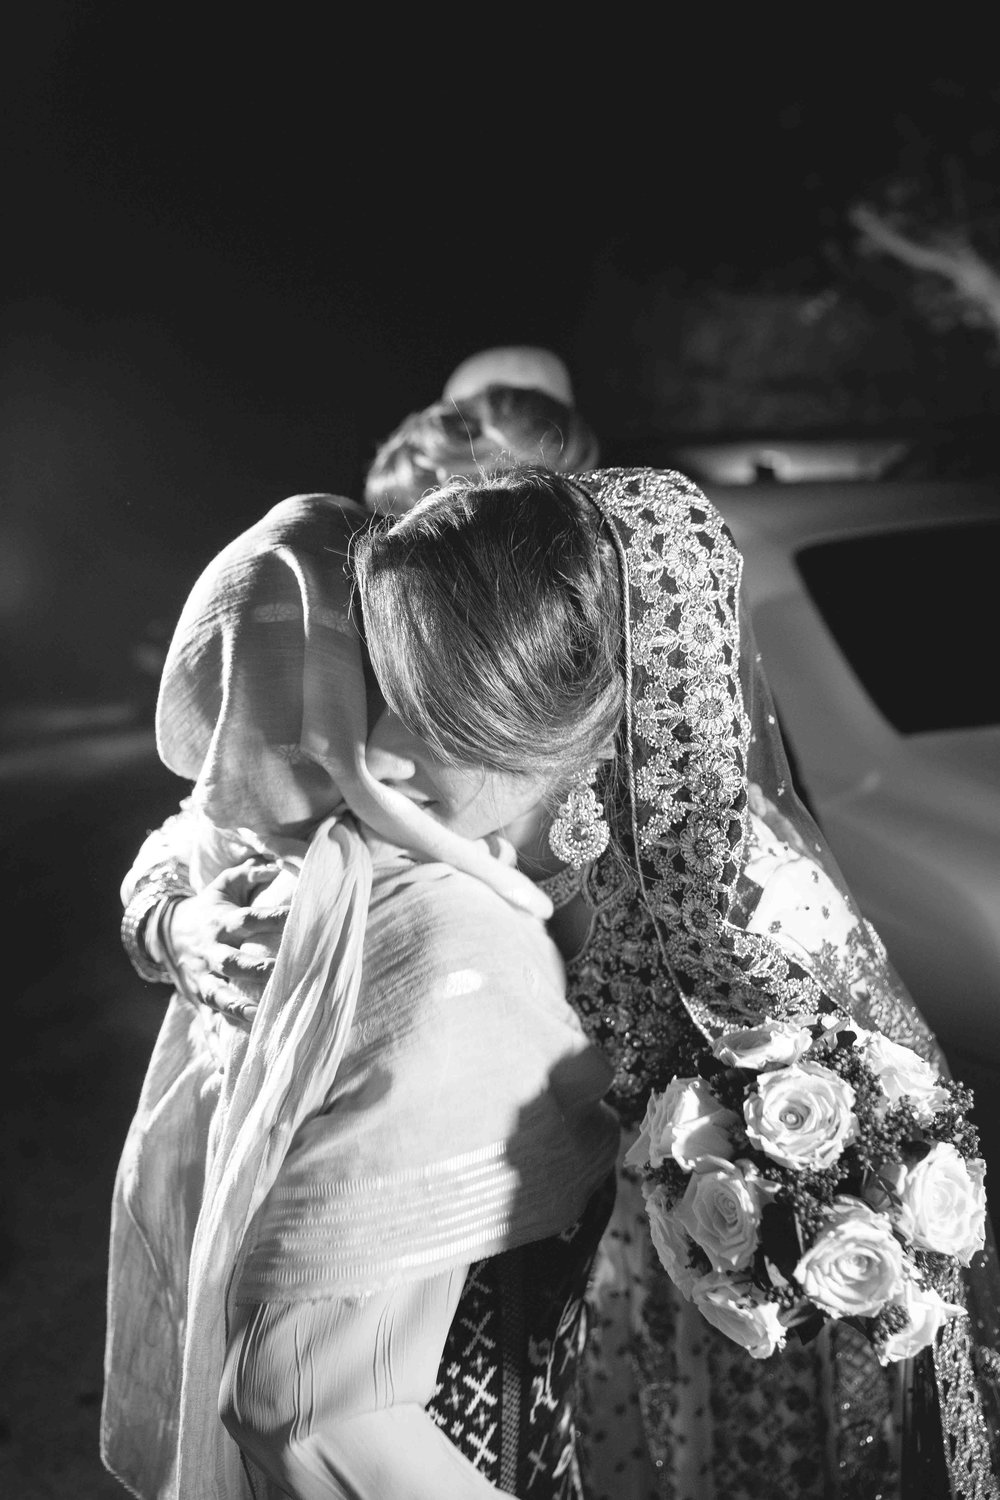 Asian Wedding Photographer Opu Sultan Photography Lyme Park Scotland Edinburgh Glasgow London Manchester Liverpool Birmingham Wedding Photos prewed shoot Azman & Saira Blog-164.jpg